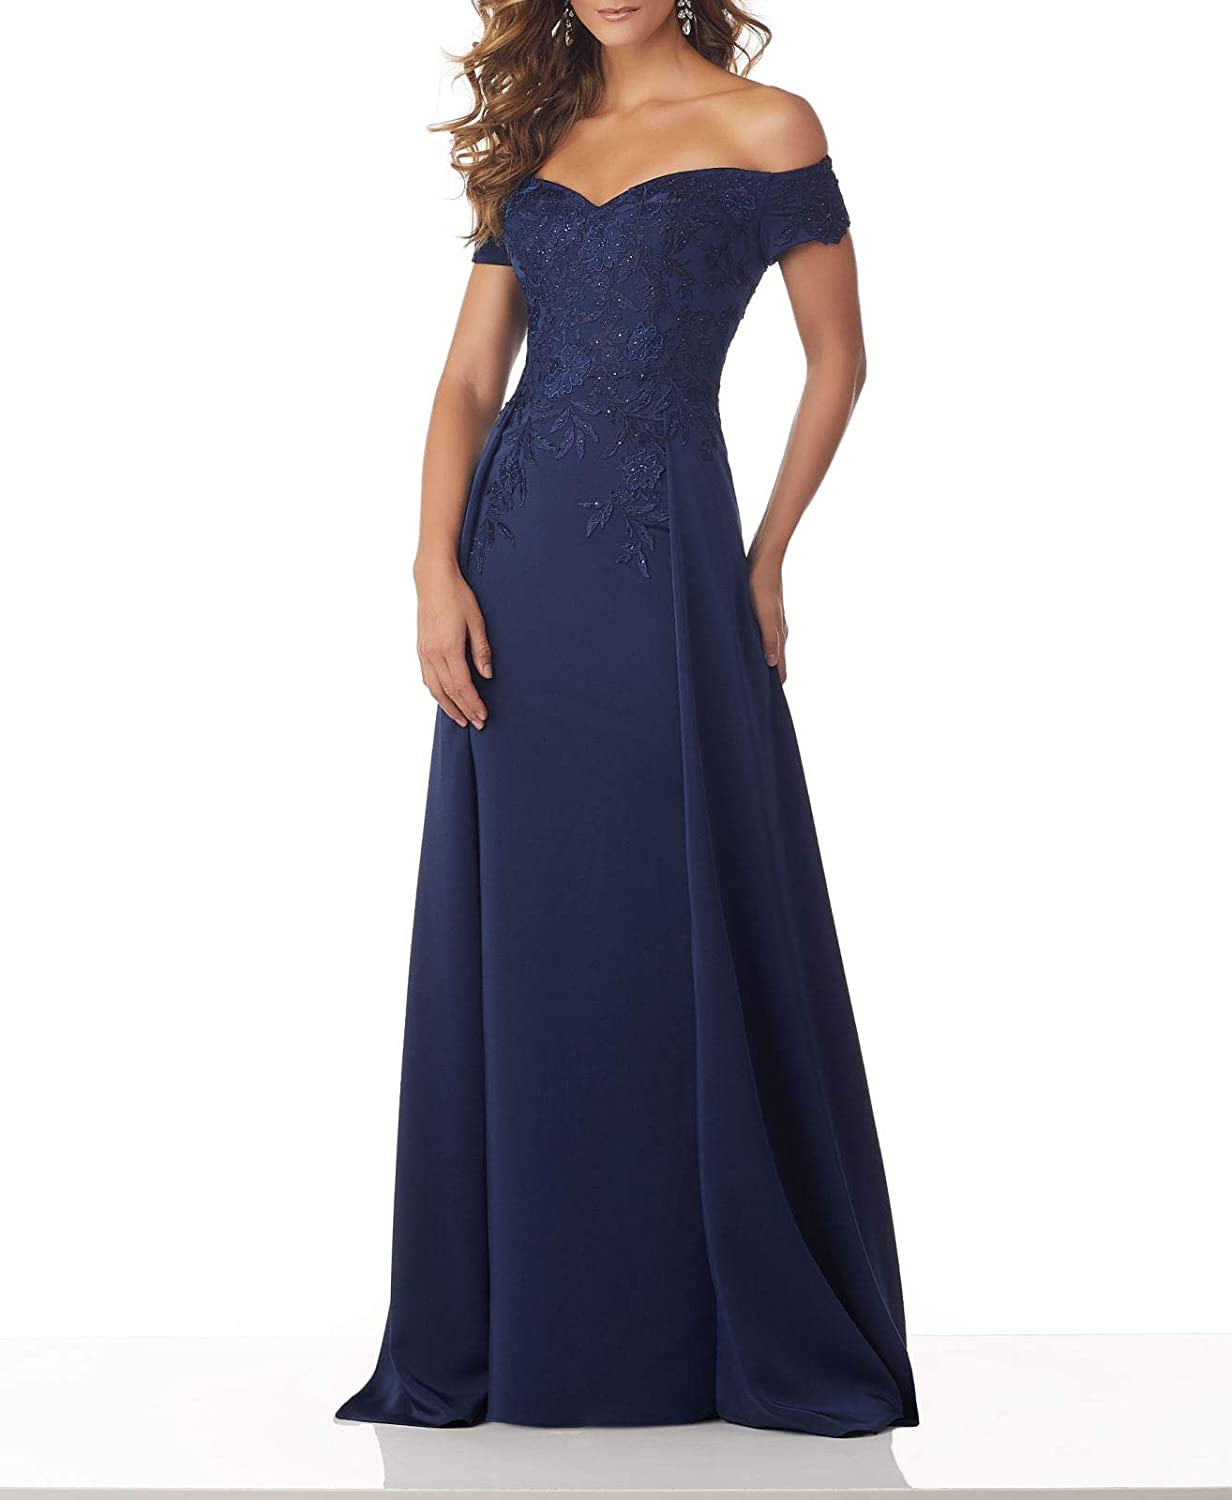 Steelbluee Wanshaqin Women's Off The Shoulder Sweetheart Evening Gown Formal Wedding Party Dress for Brides with Cloak Back Tail